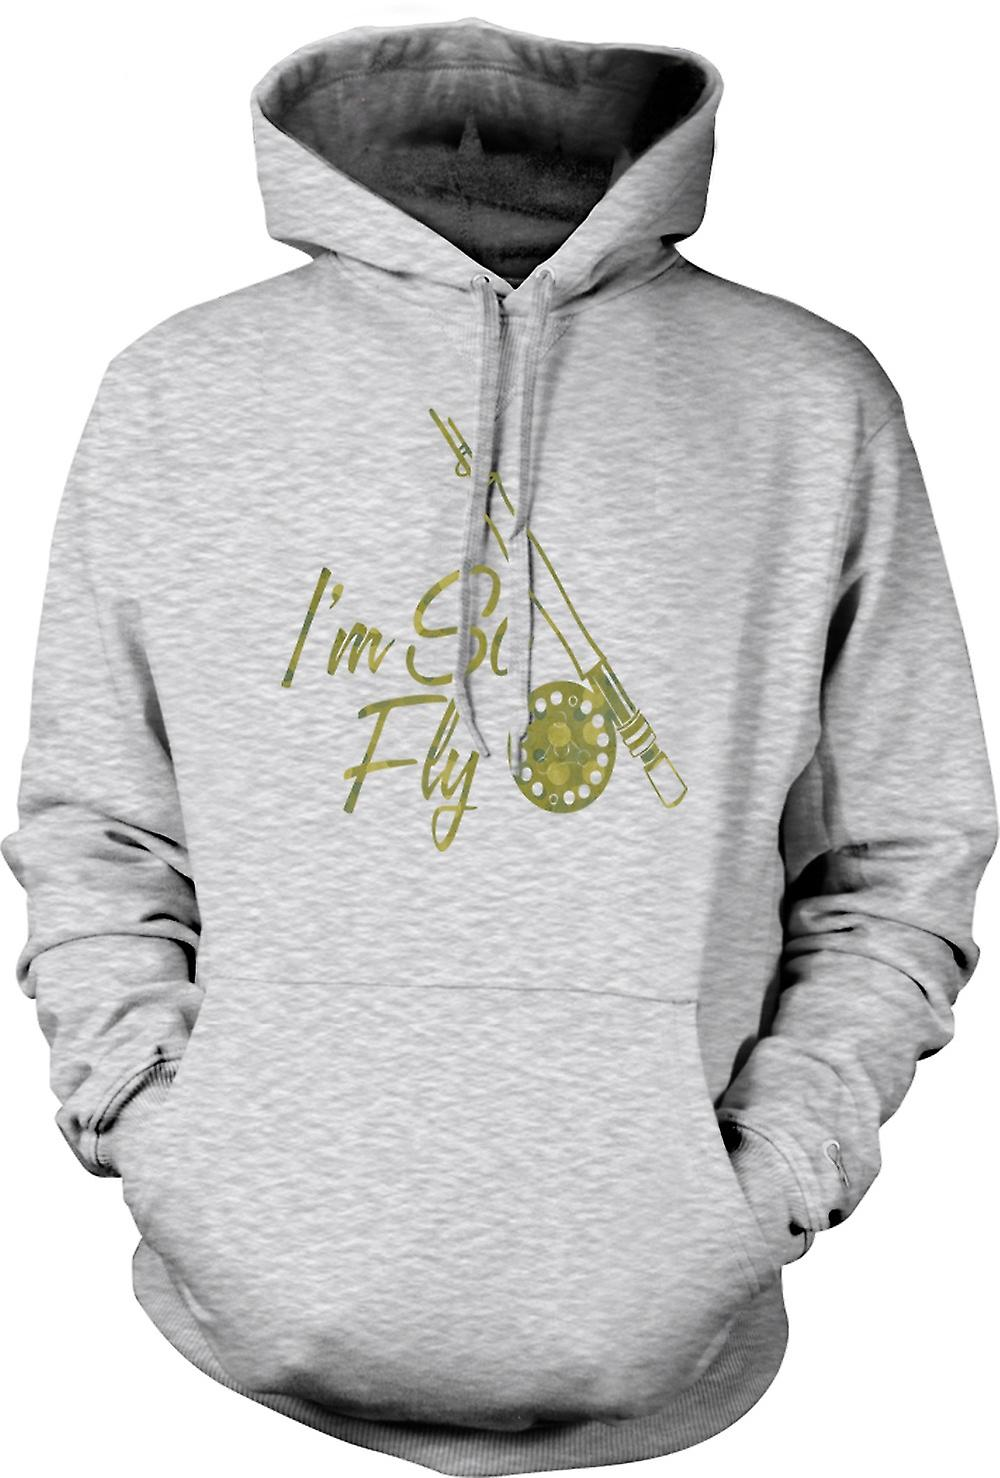 Mens Hoodie - Im So Fly - Fly Fishing